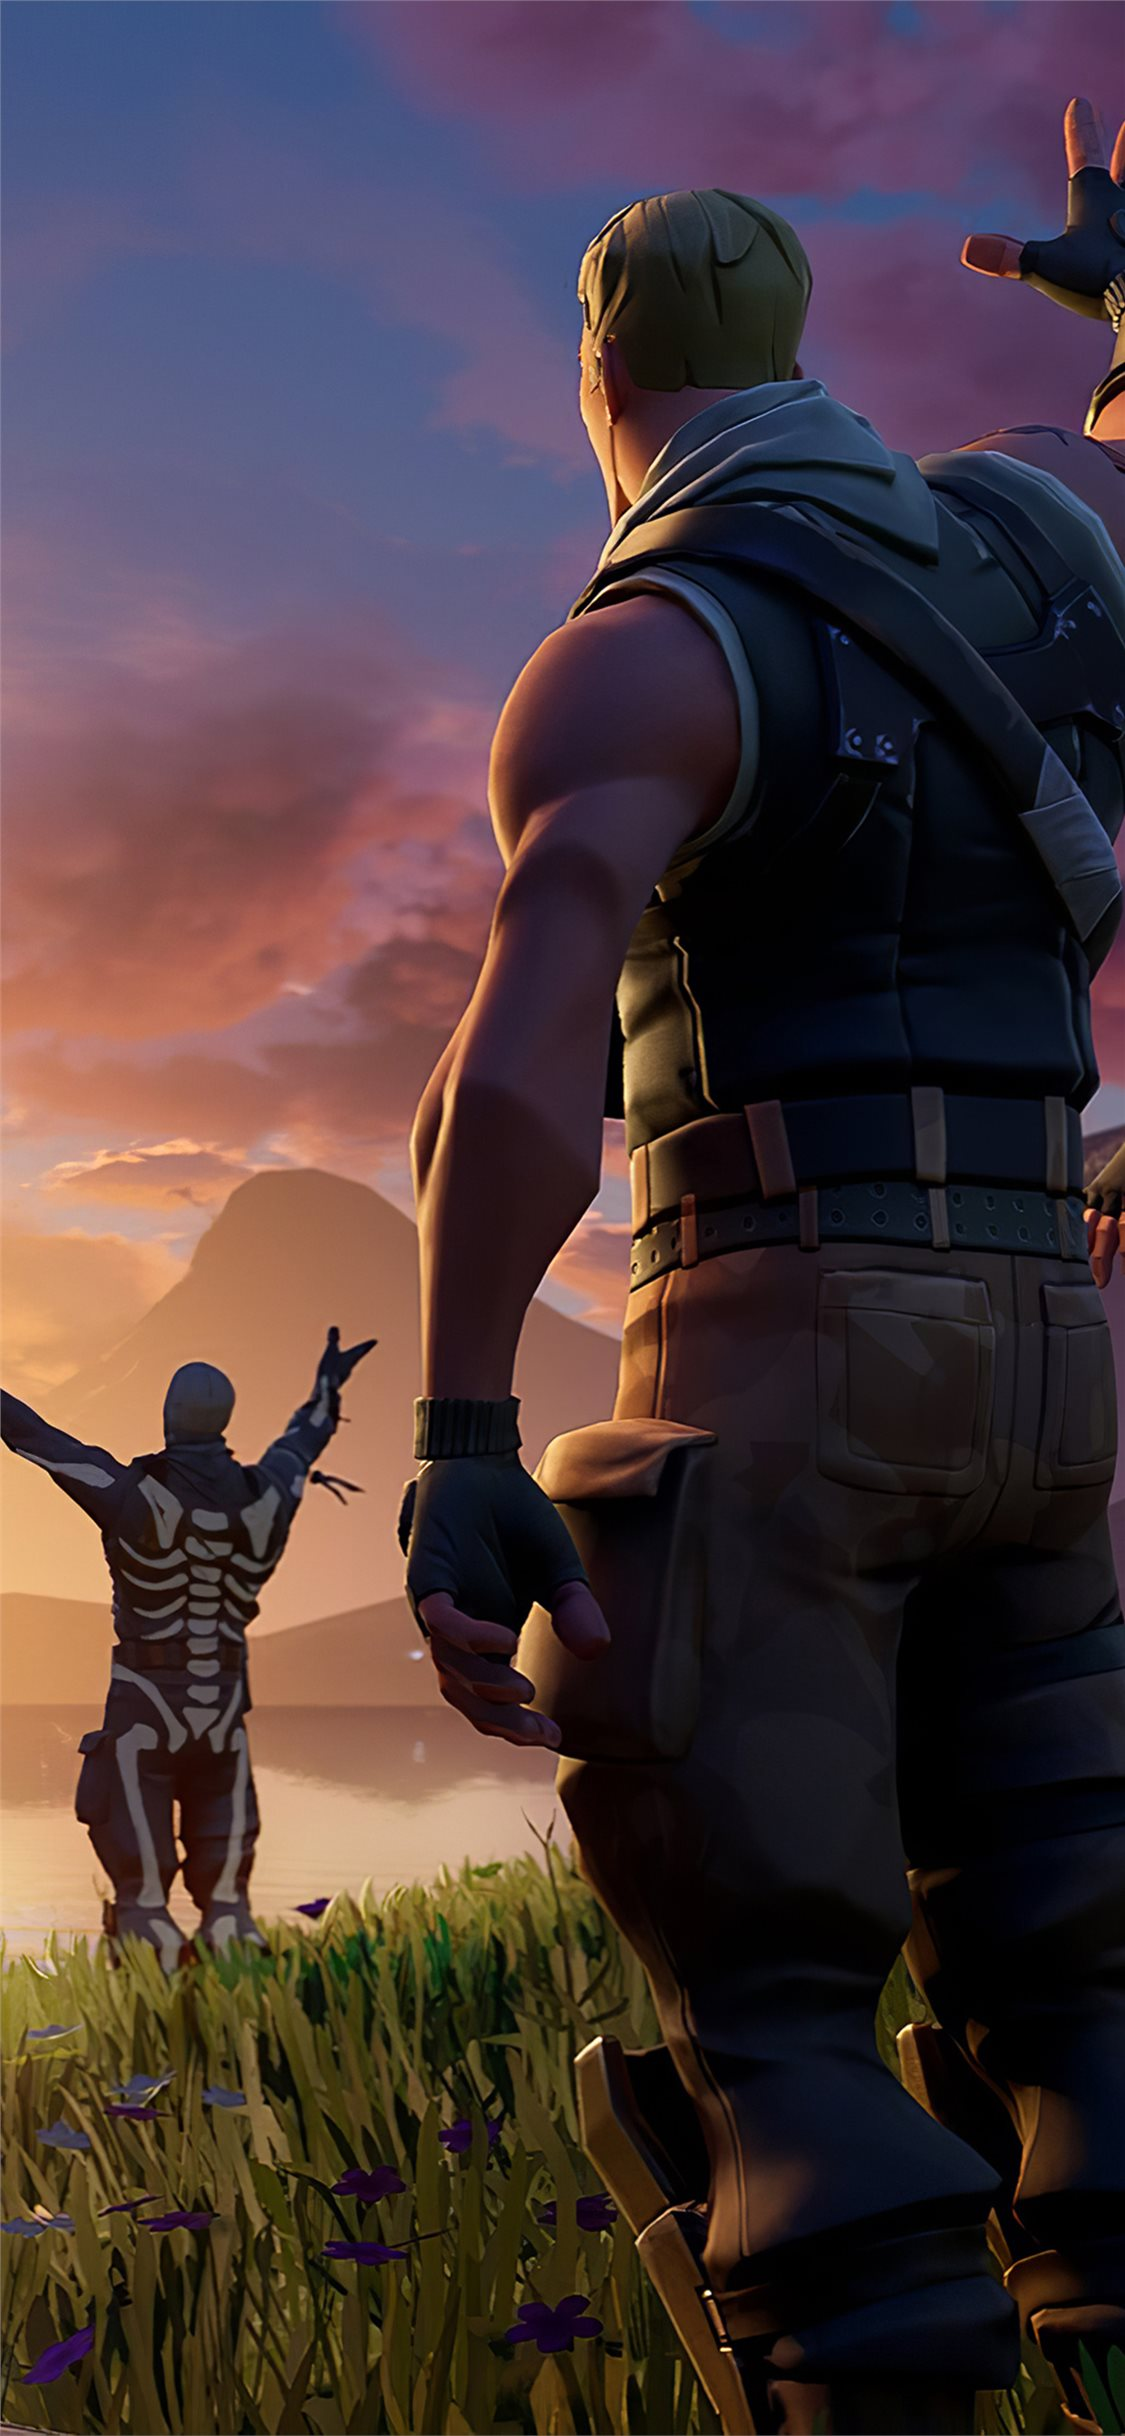 Fortnite Chapter 2 Iphone X Wallpapers Free Download